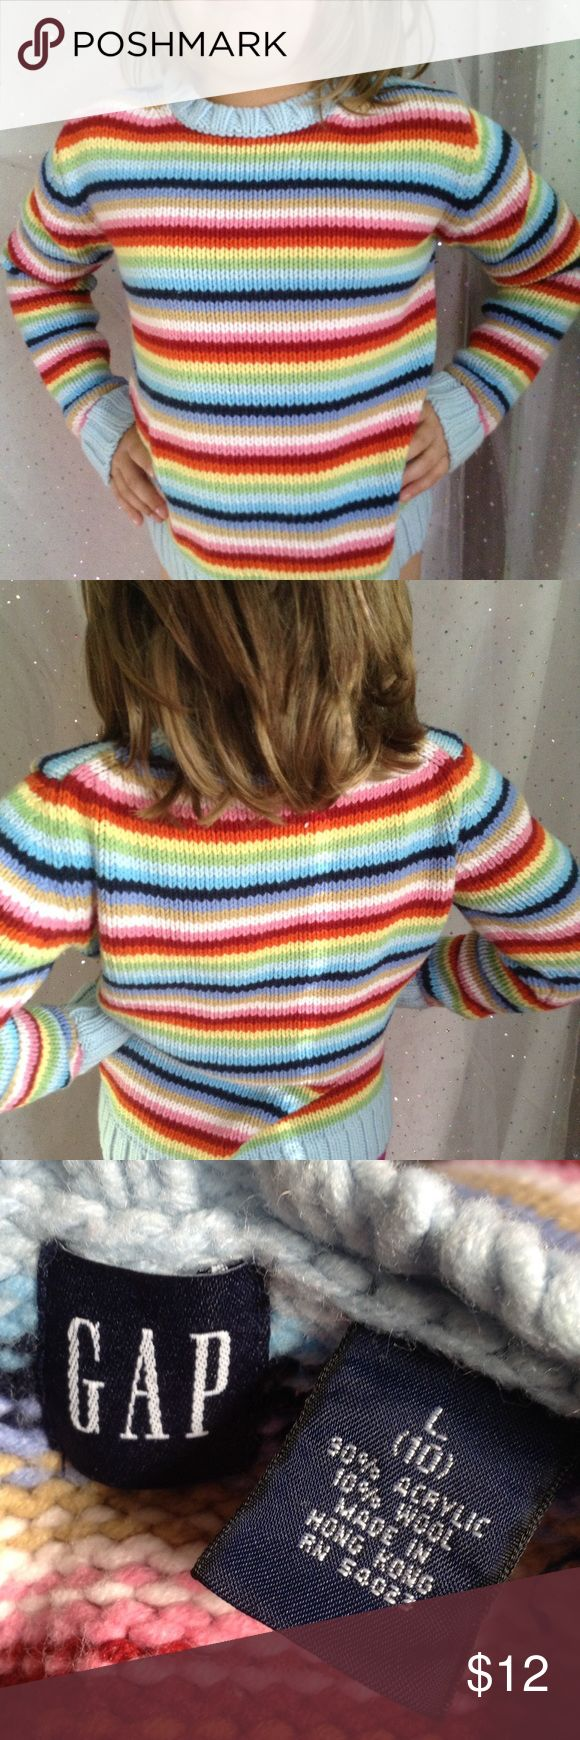 🎀 GIRLS 10 Gap Rainbow Sweater This sweet sweater truly goes with anything!  Medium weight cable.  90% acrylic, 10% wool, machine wash.  Model is size 10. GAP Shirts & Tops Sweaters